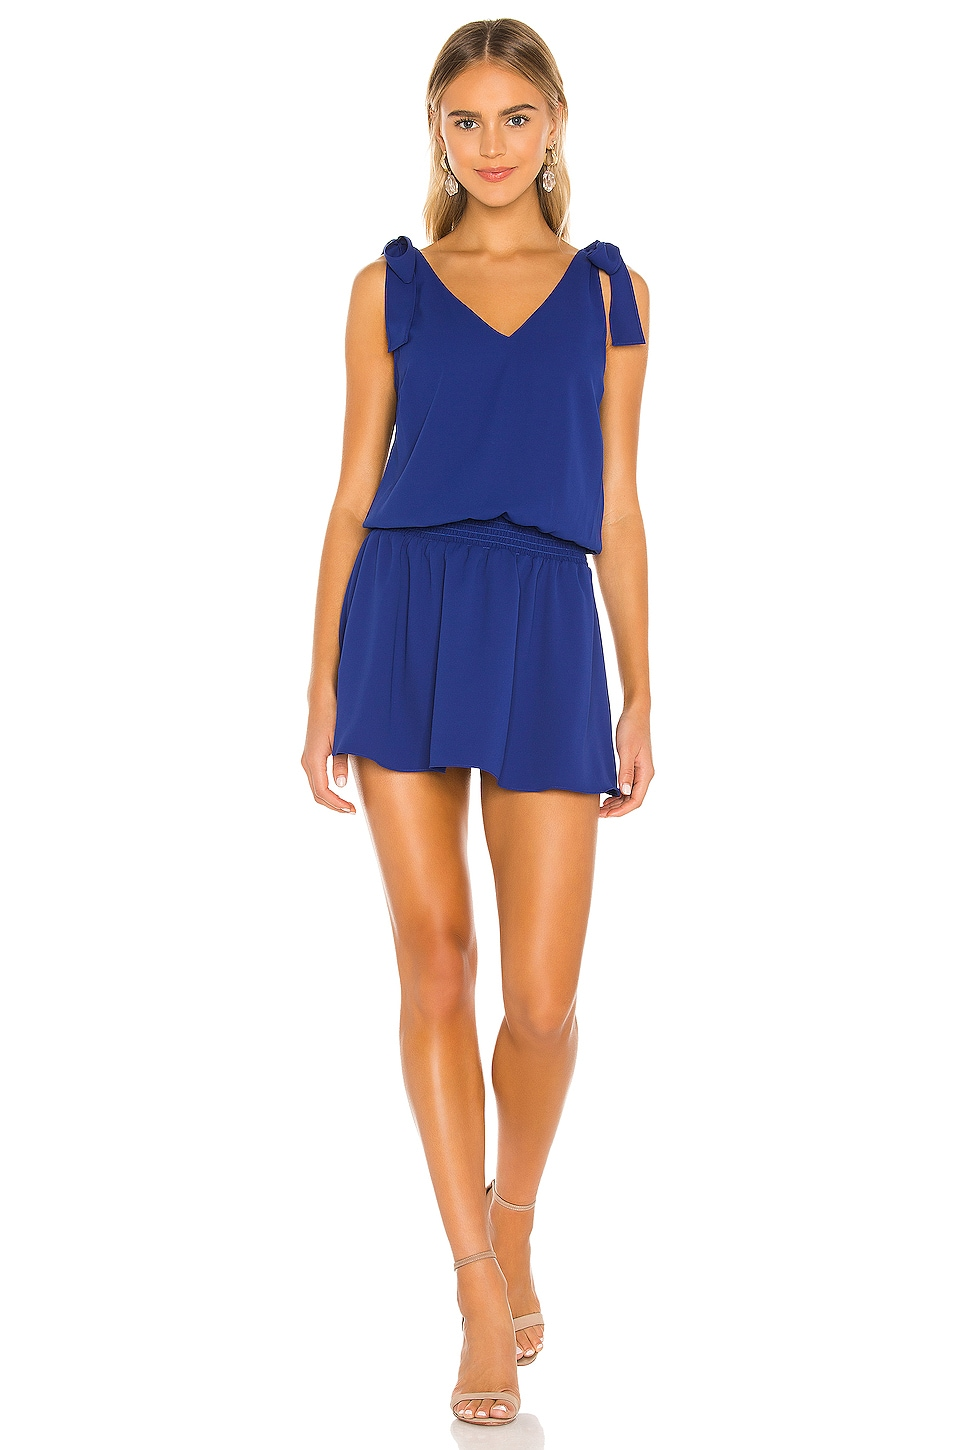 Josephina Dress             Amanda Uprichard                                                                                                       CA$ 272.92 17